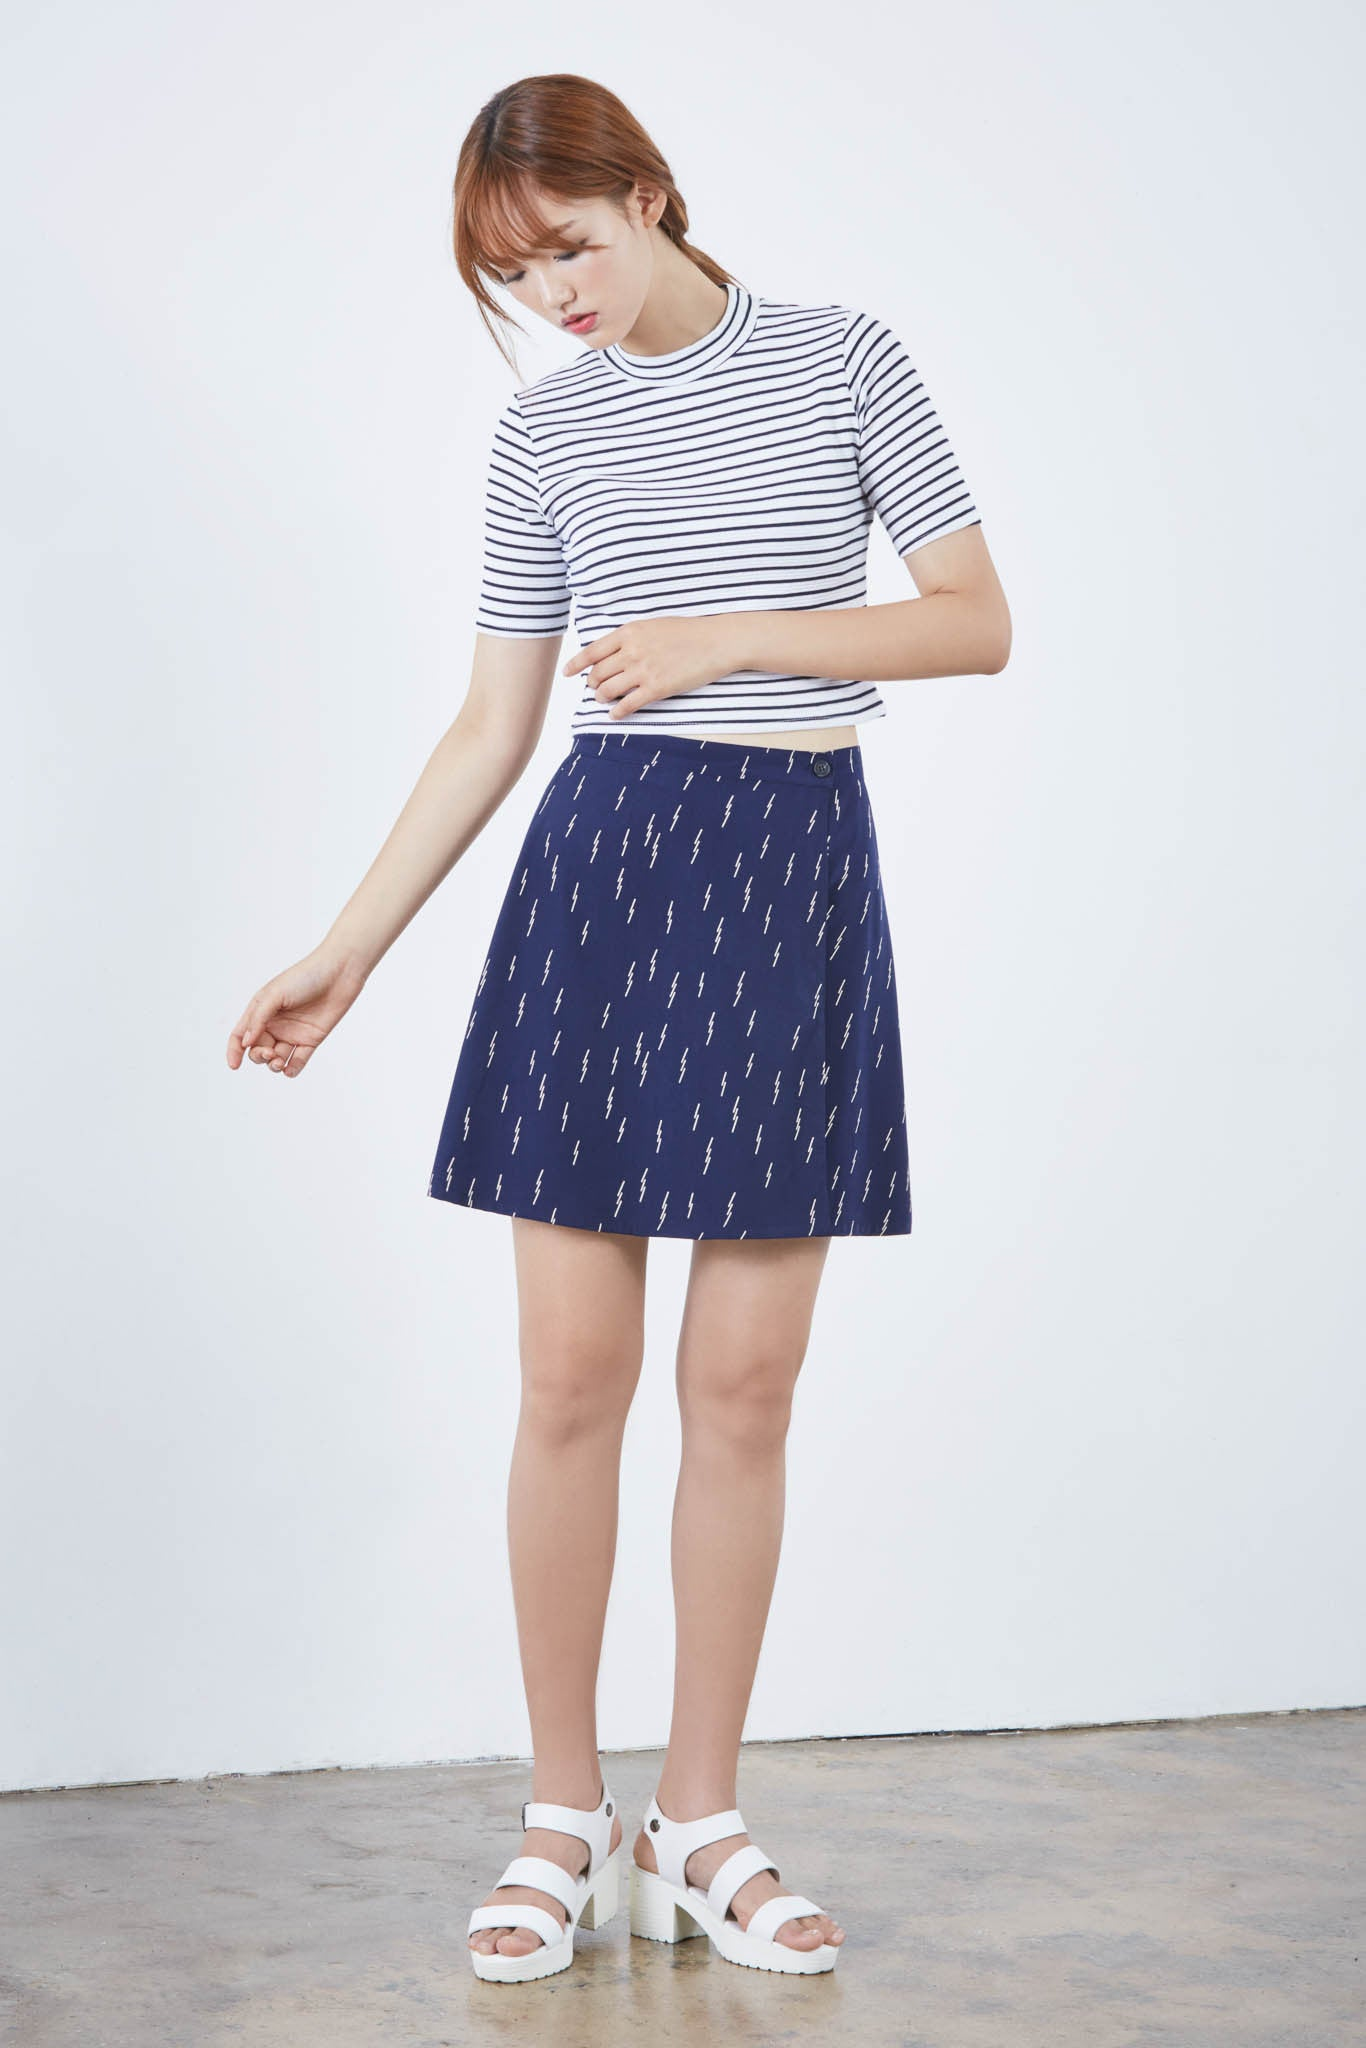 Neo-nautical high neck striped top